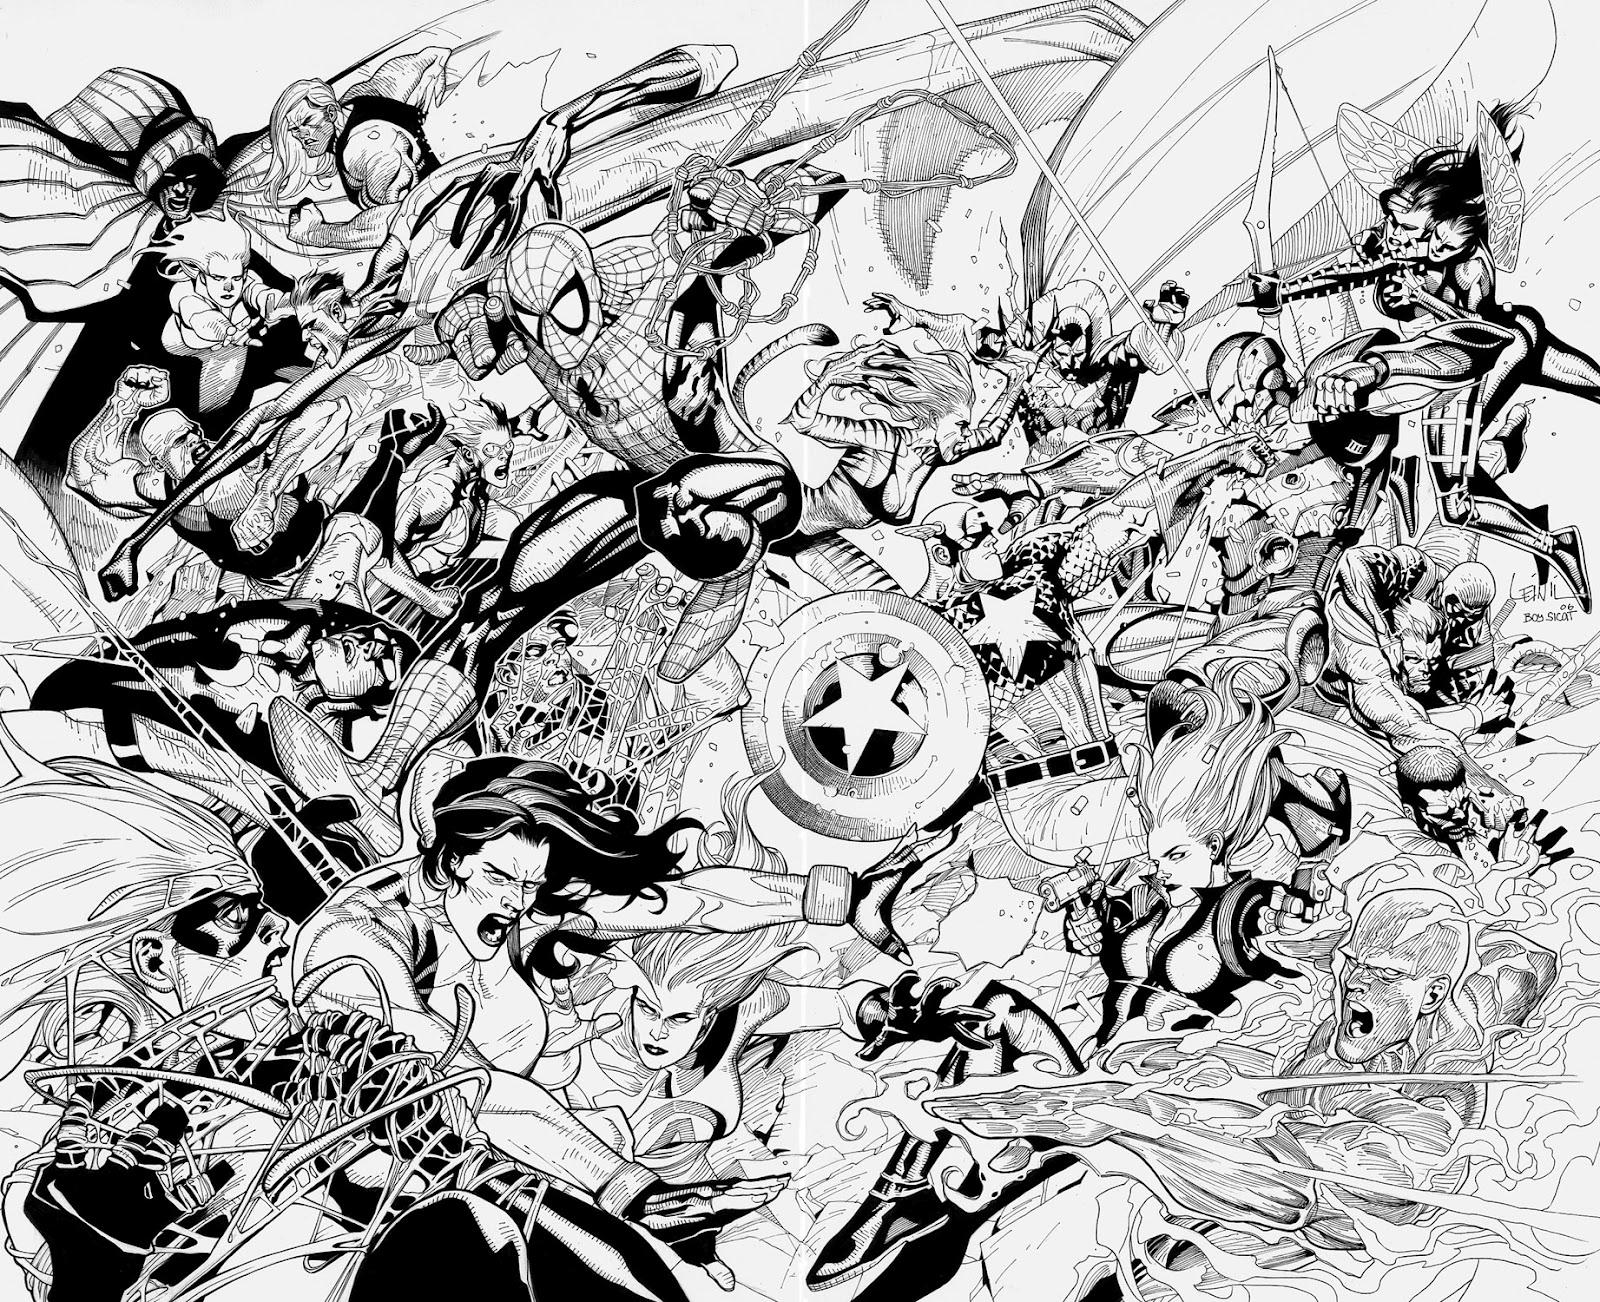 Avengers Team Coloring Pages : Free coloring pages of the avengers team